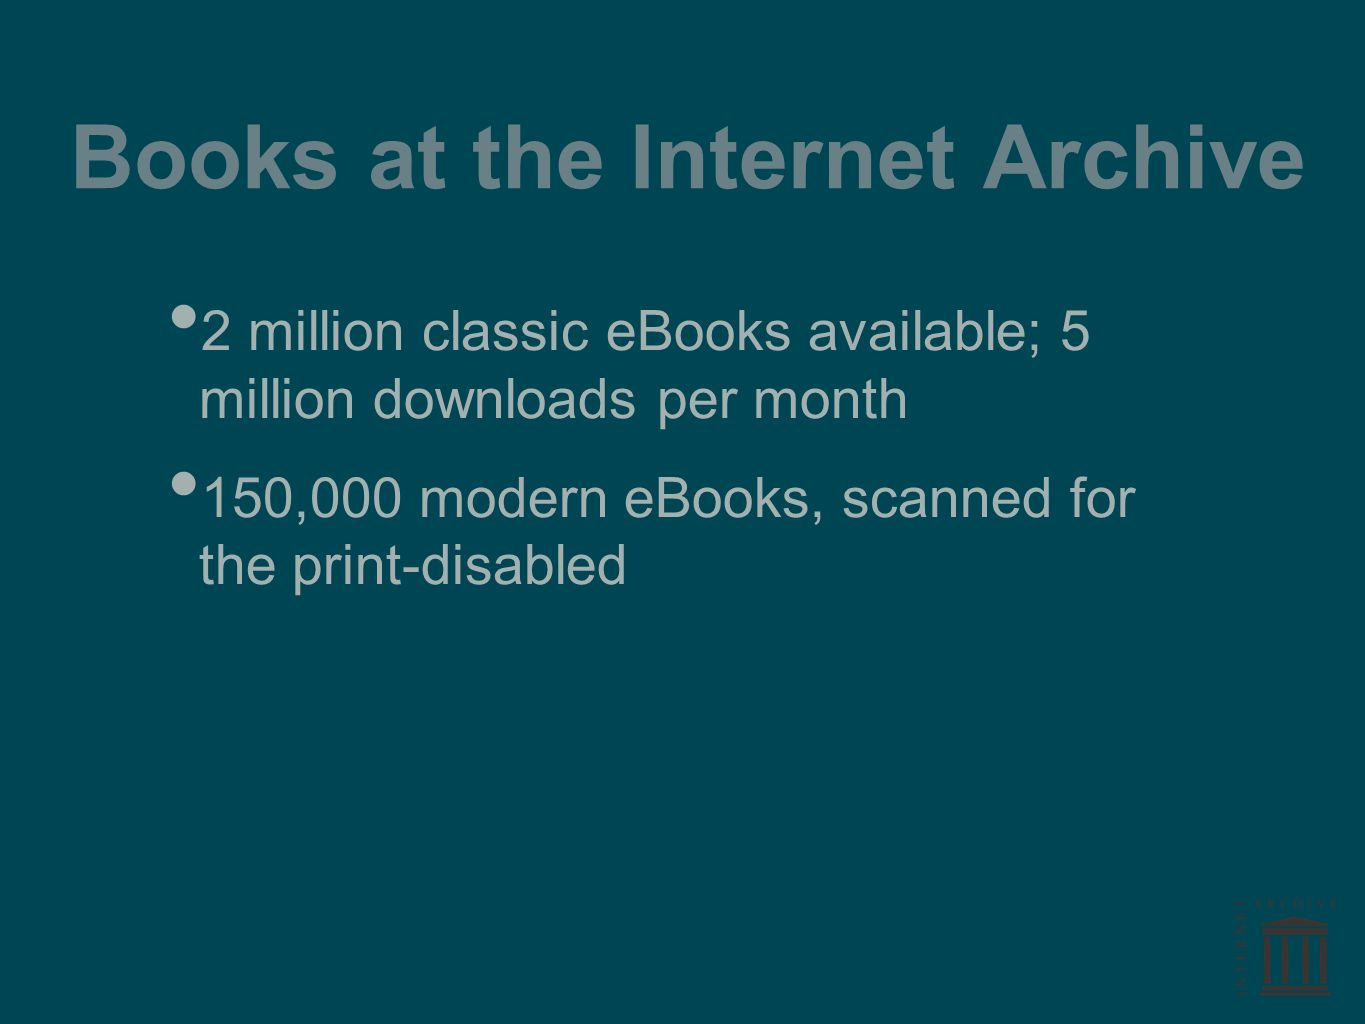 Books at the Internet Archive 2 million classic eBooks available; 5 million downloads per month 150,000 modern eBooks, scanned for the print-disabled